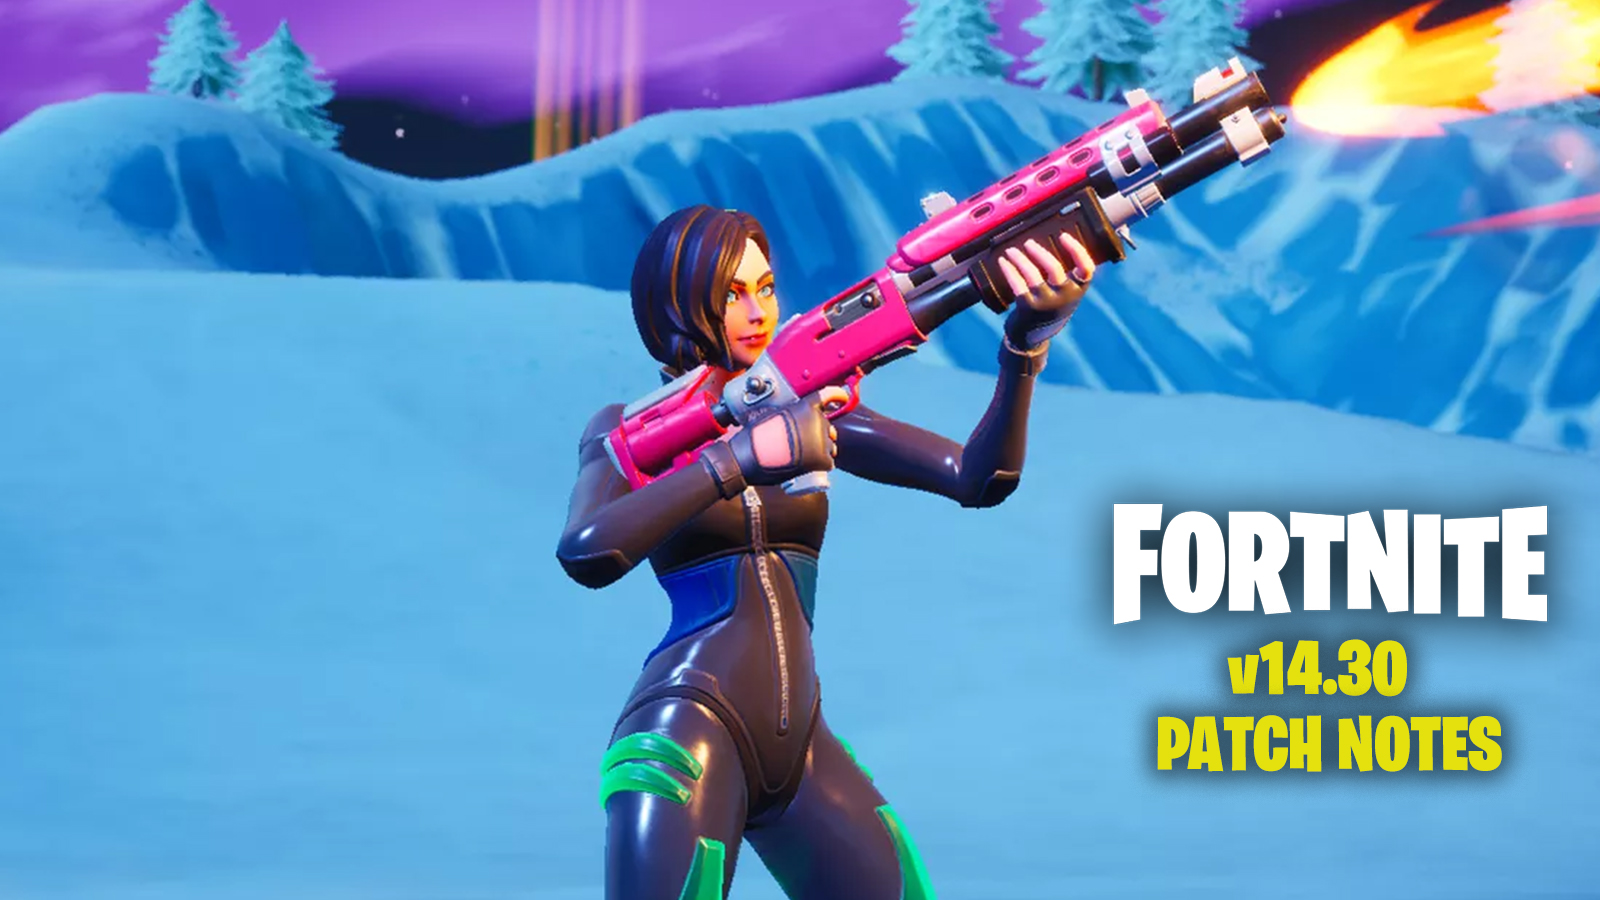 Fortnite character using Combat Shotgun